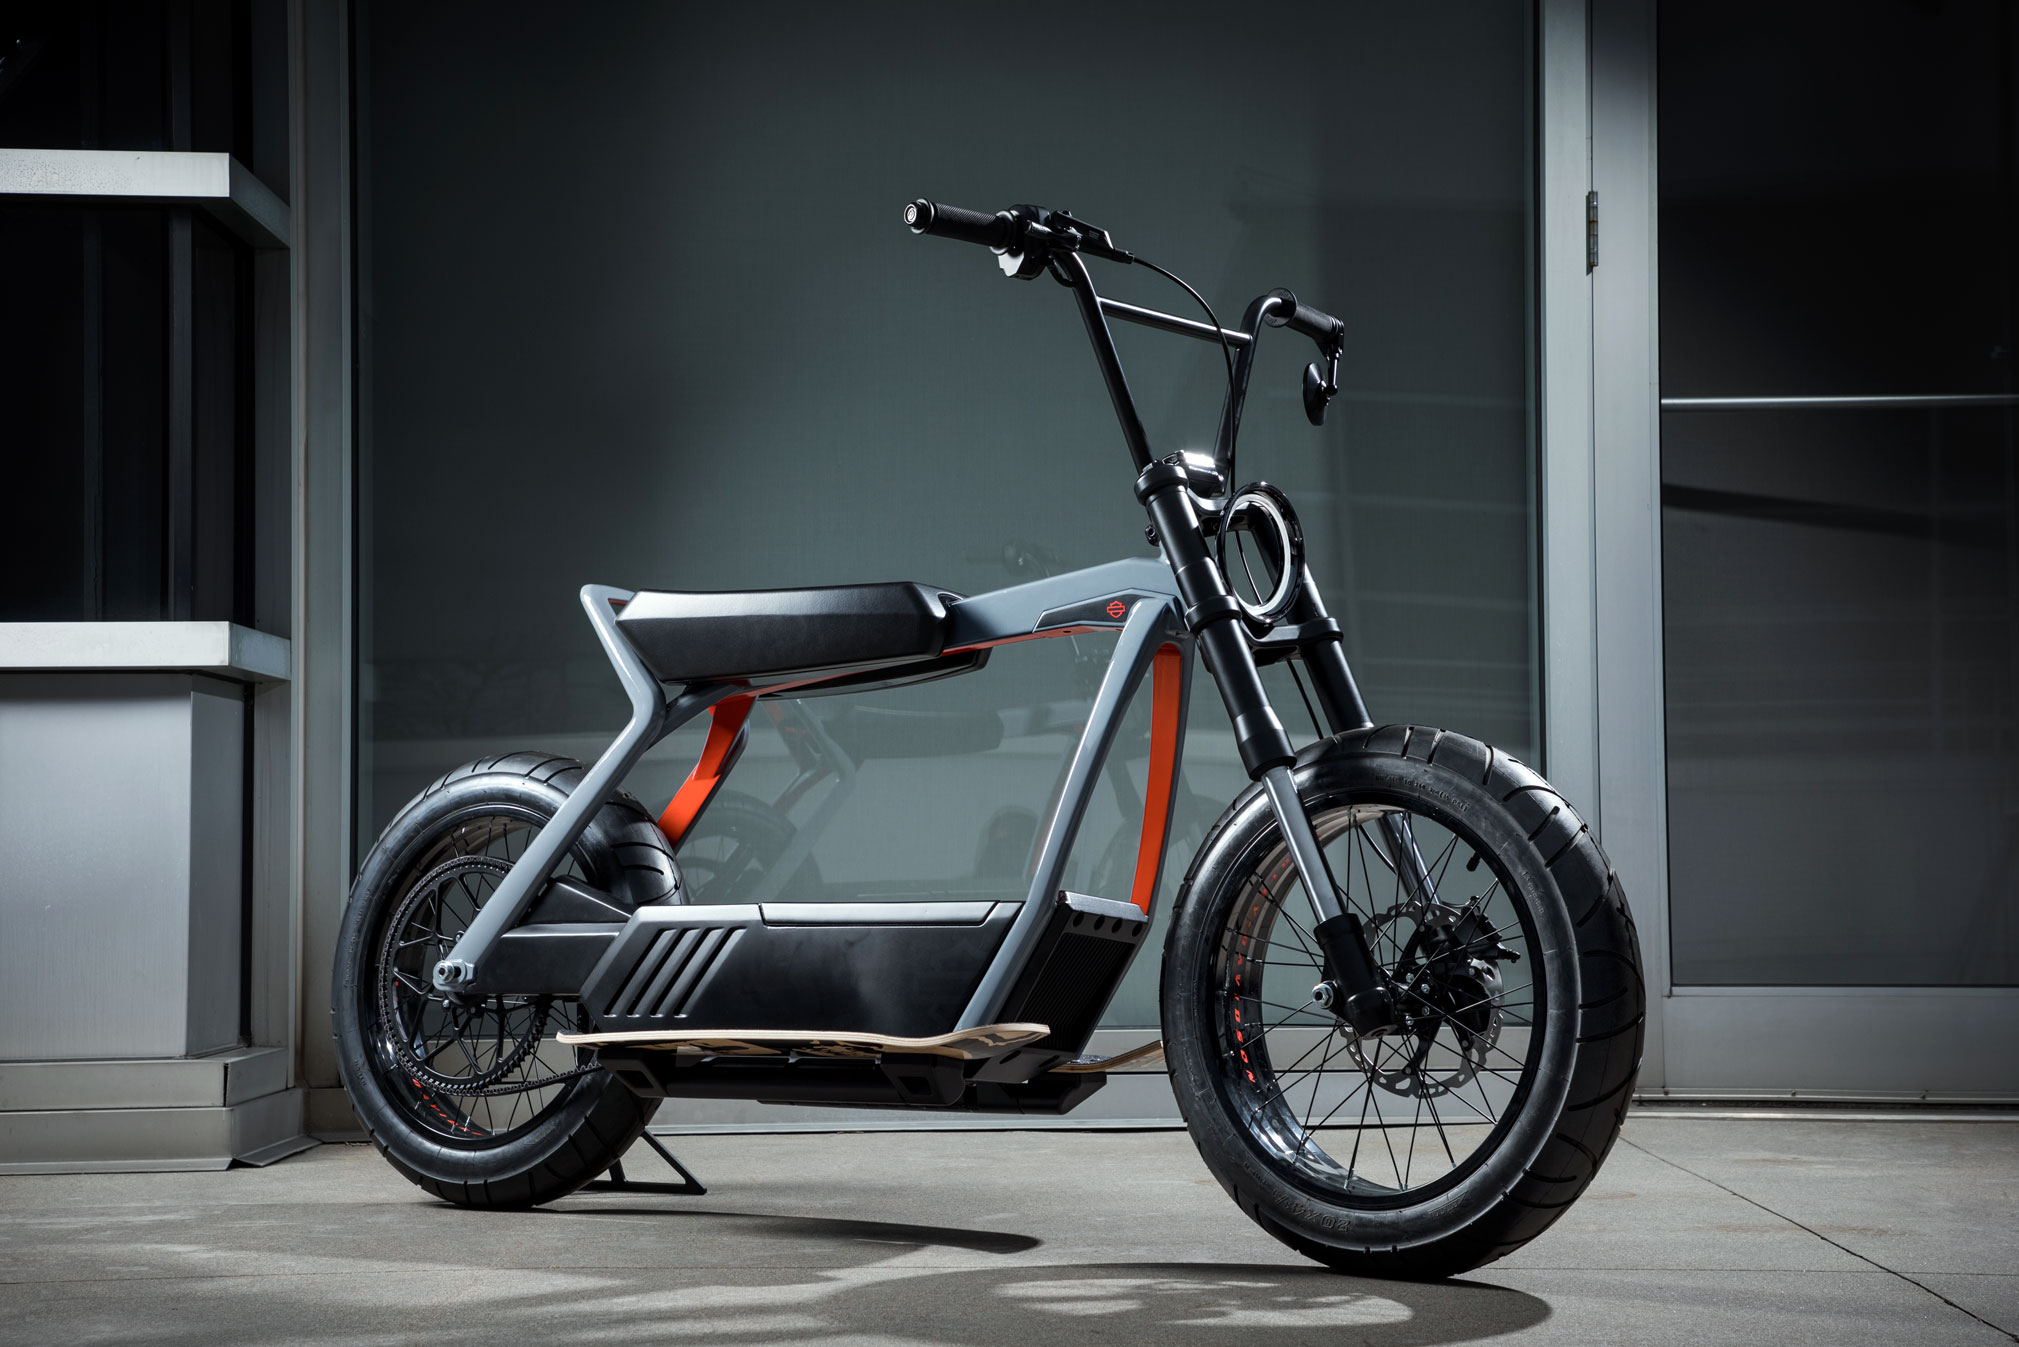 Harley Davidson Electric Scooter